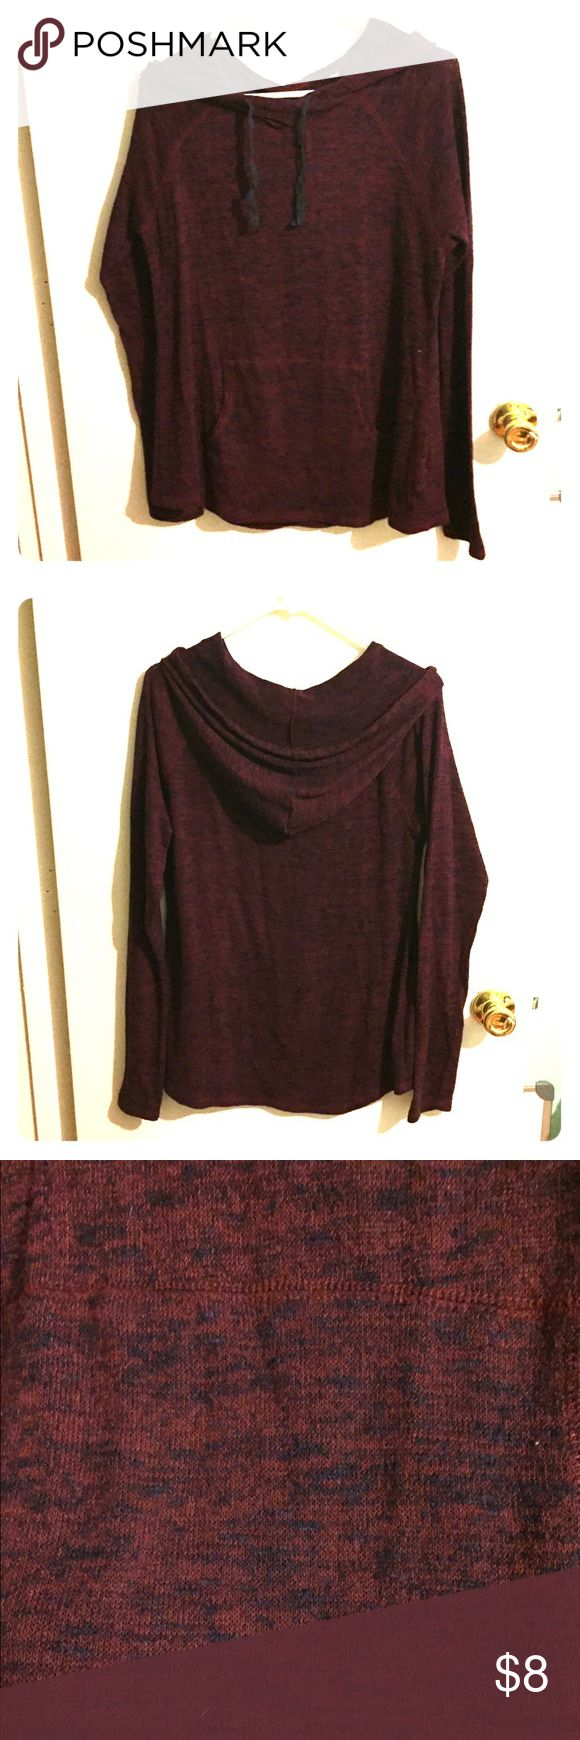 Long sleeve, hooded pullover Here's a burgundy/maroon and navy long sleeve top with a hood and pocket in the front! Worn quite a bit, but still in good condition. BUNDLE TO SAVE. I have numerous gorgeous sweaters. Kirra Tops Tees - Long Sleeve